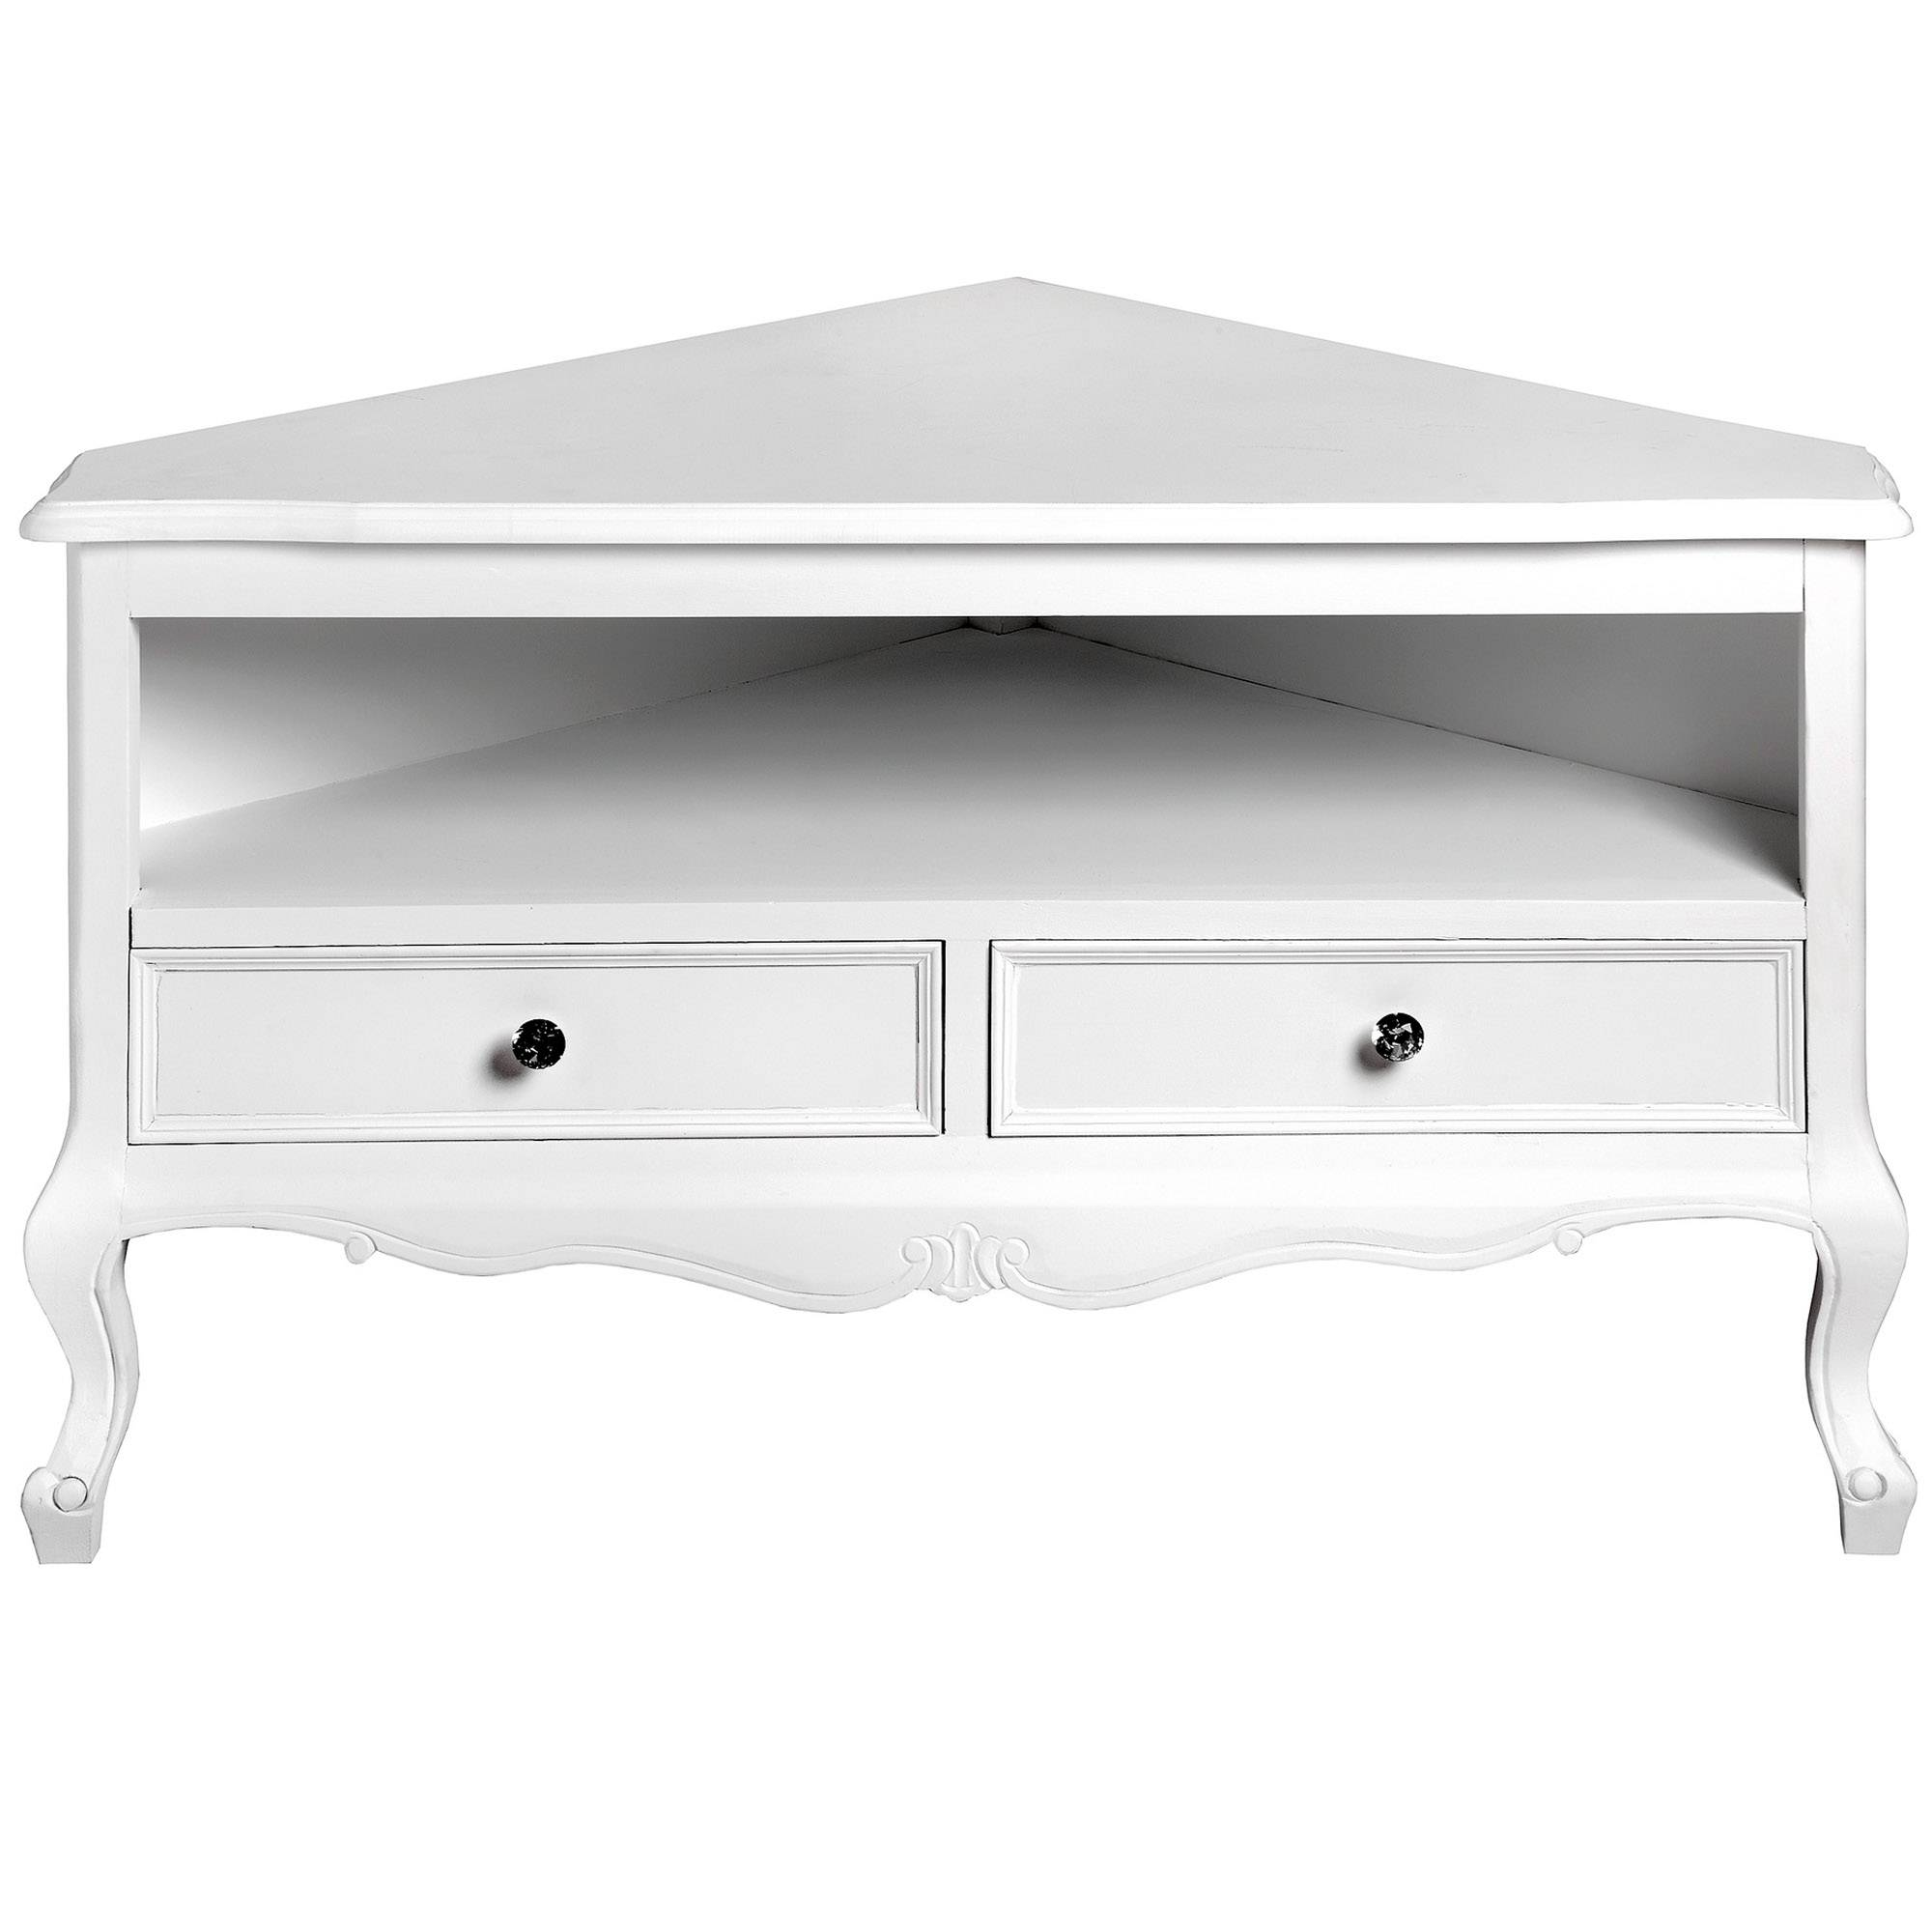 Fleur White Shabby Chic Corner Tv Unit | Lounge | Homesdirect365 with regard to White Corner Tv Cabinets (Image 2 of 15)